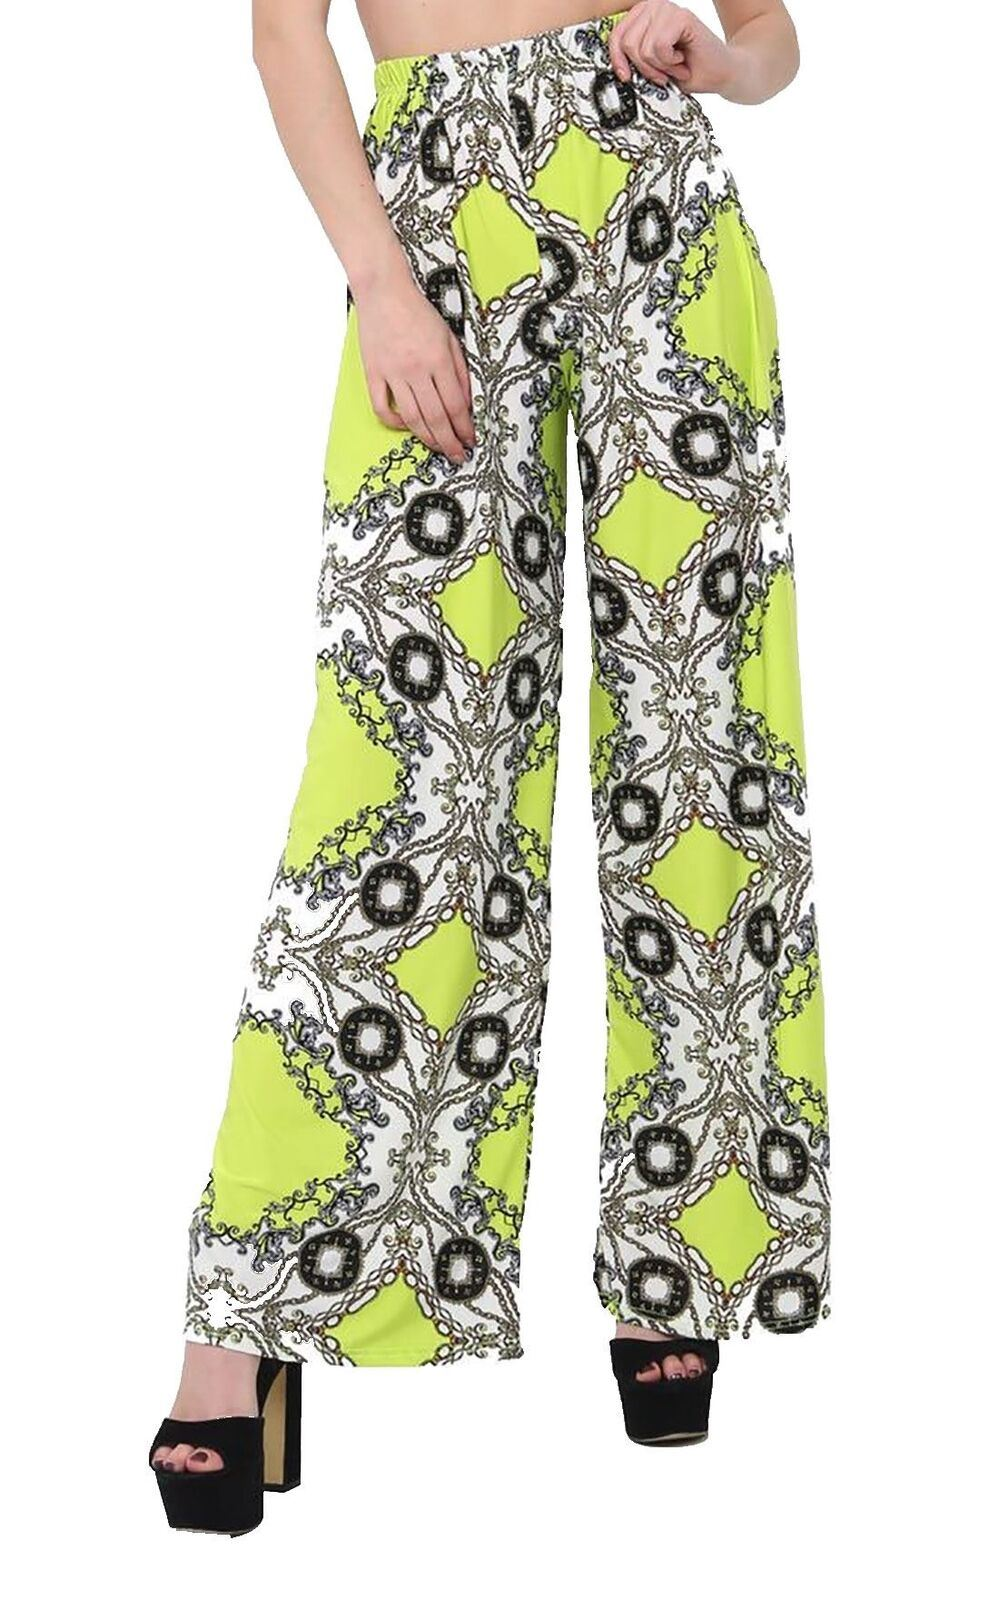 New-Ladies-Floral-Printed-Wide-Leg-Flared-Parallel-Baggy-Trousers-Pants-Palazzo thumbnail 66